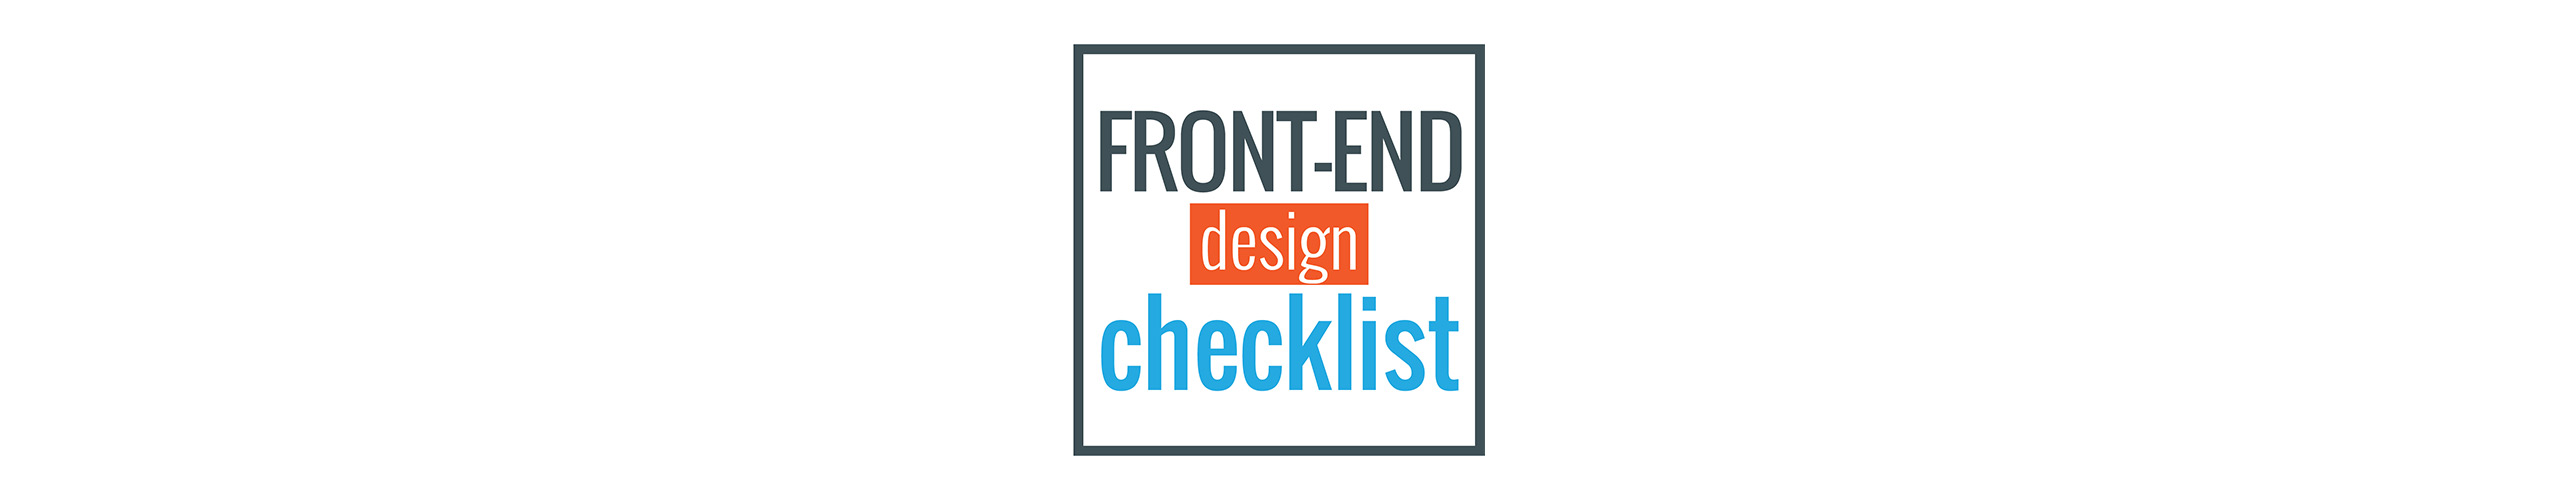 Front-End Design Checklist